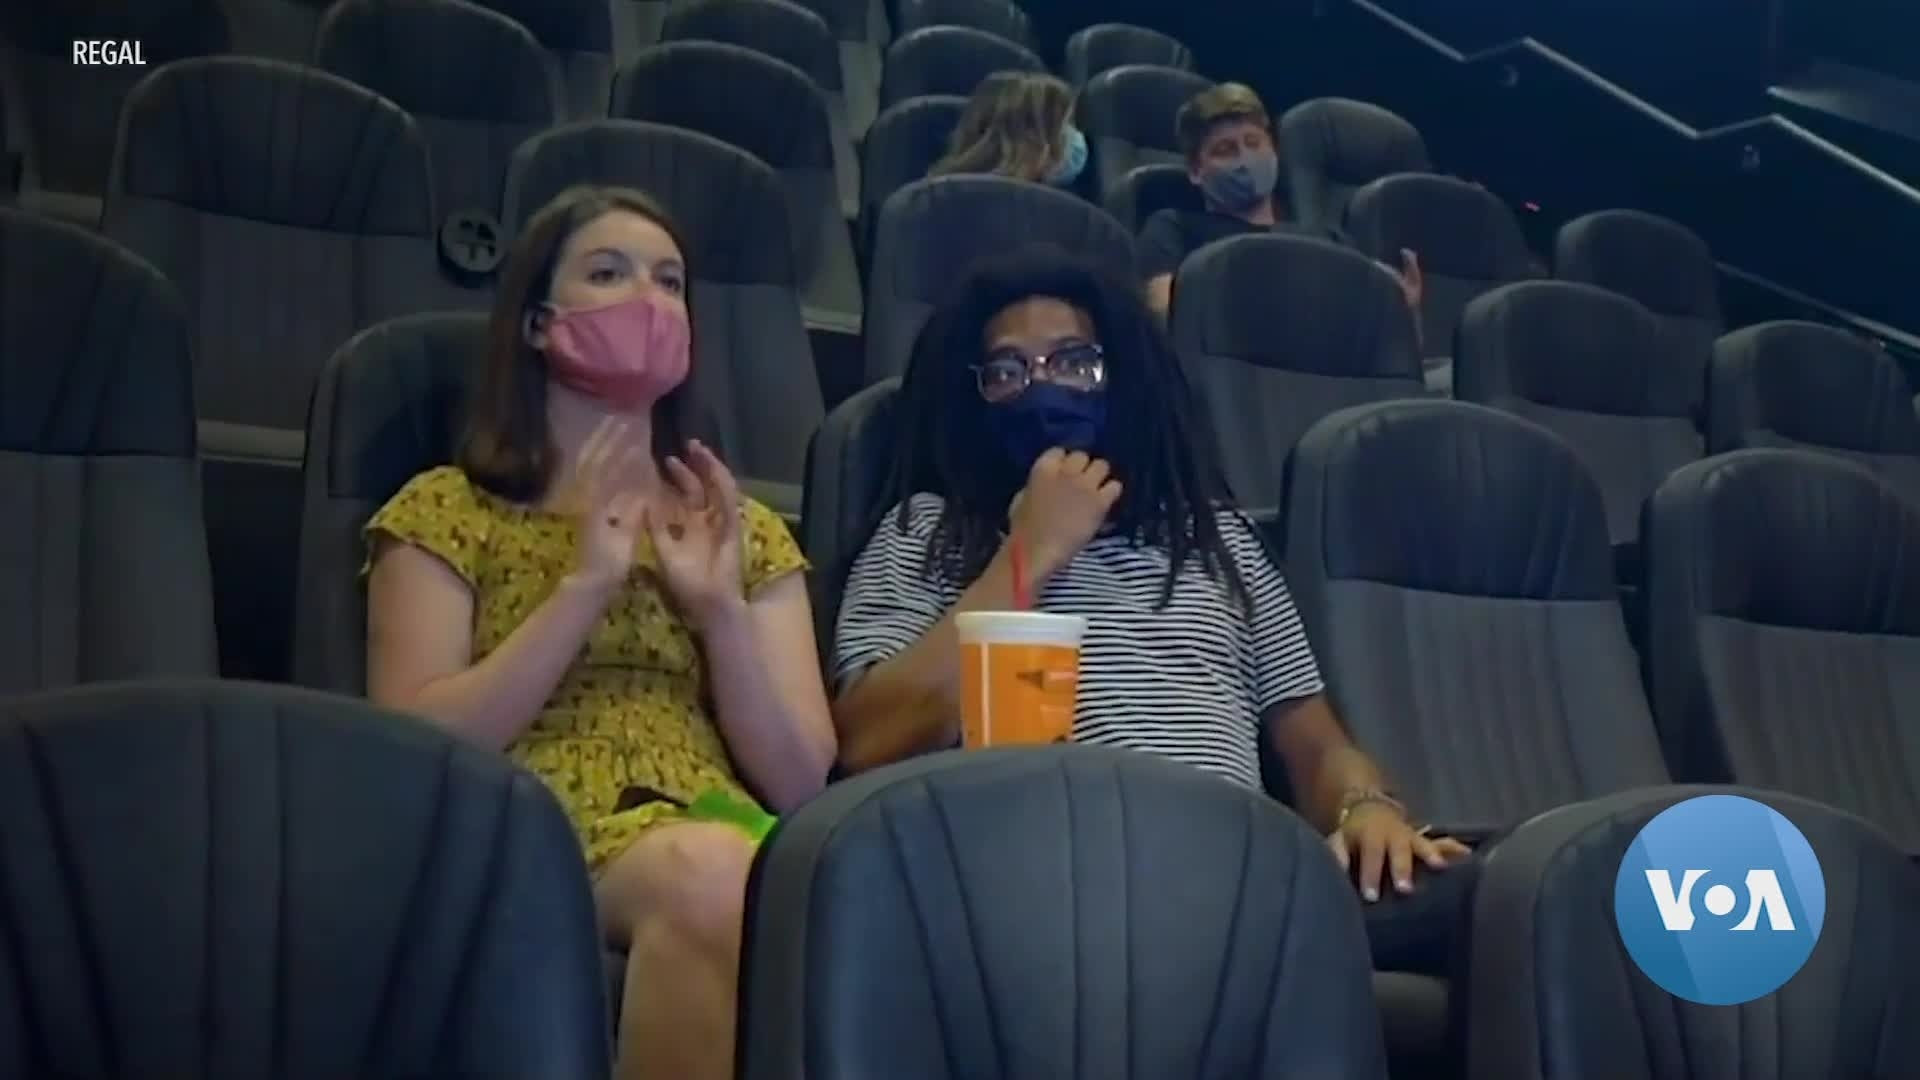 New York Movie Theaters Prepare to Reopen